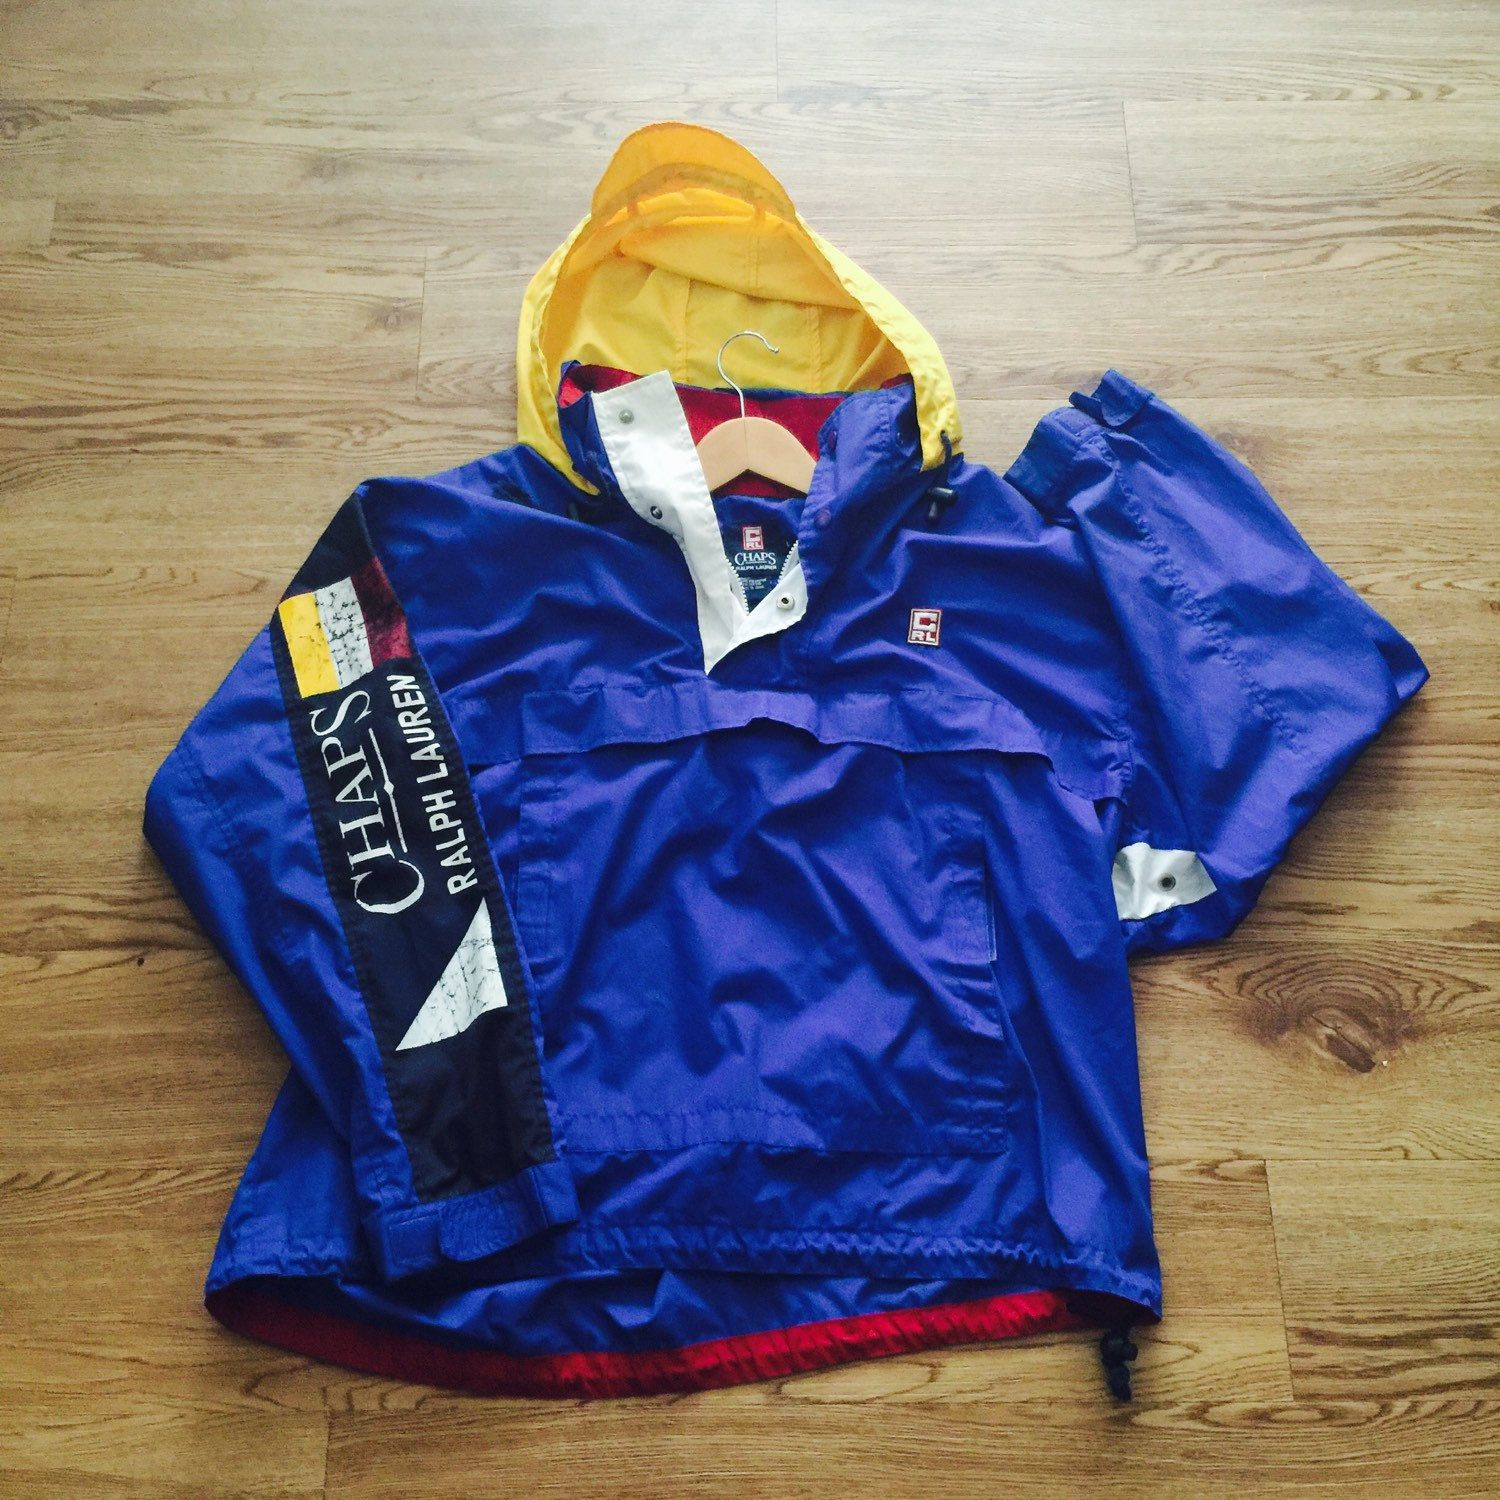 Vintage Chaps x Ralph Lauren Pullover Jacket by VNTGvault on Etsy ... 14cdfcd988180